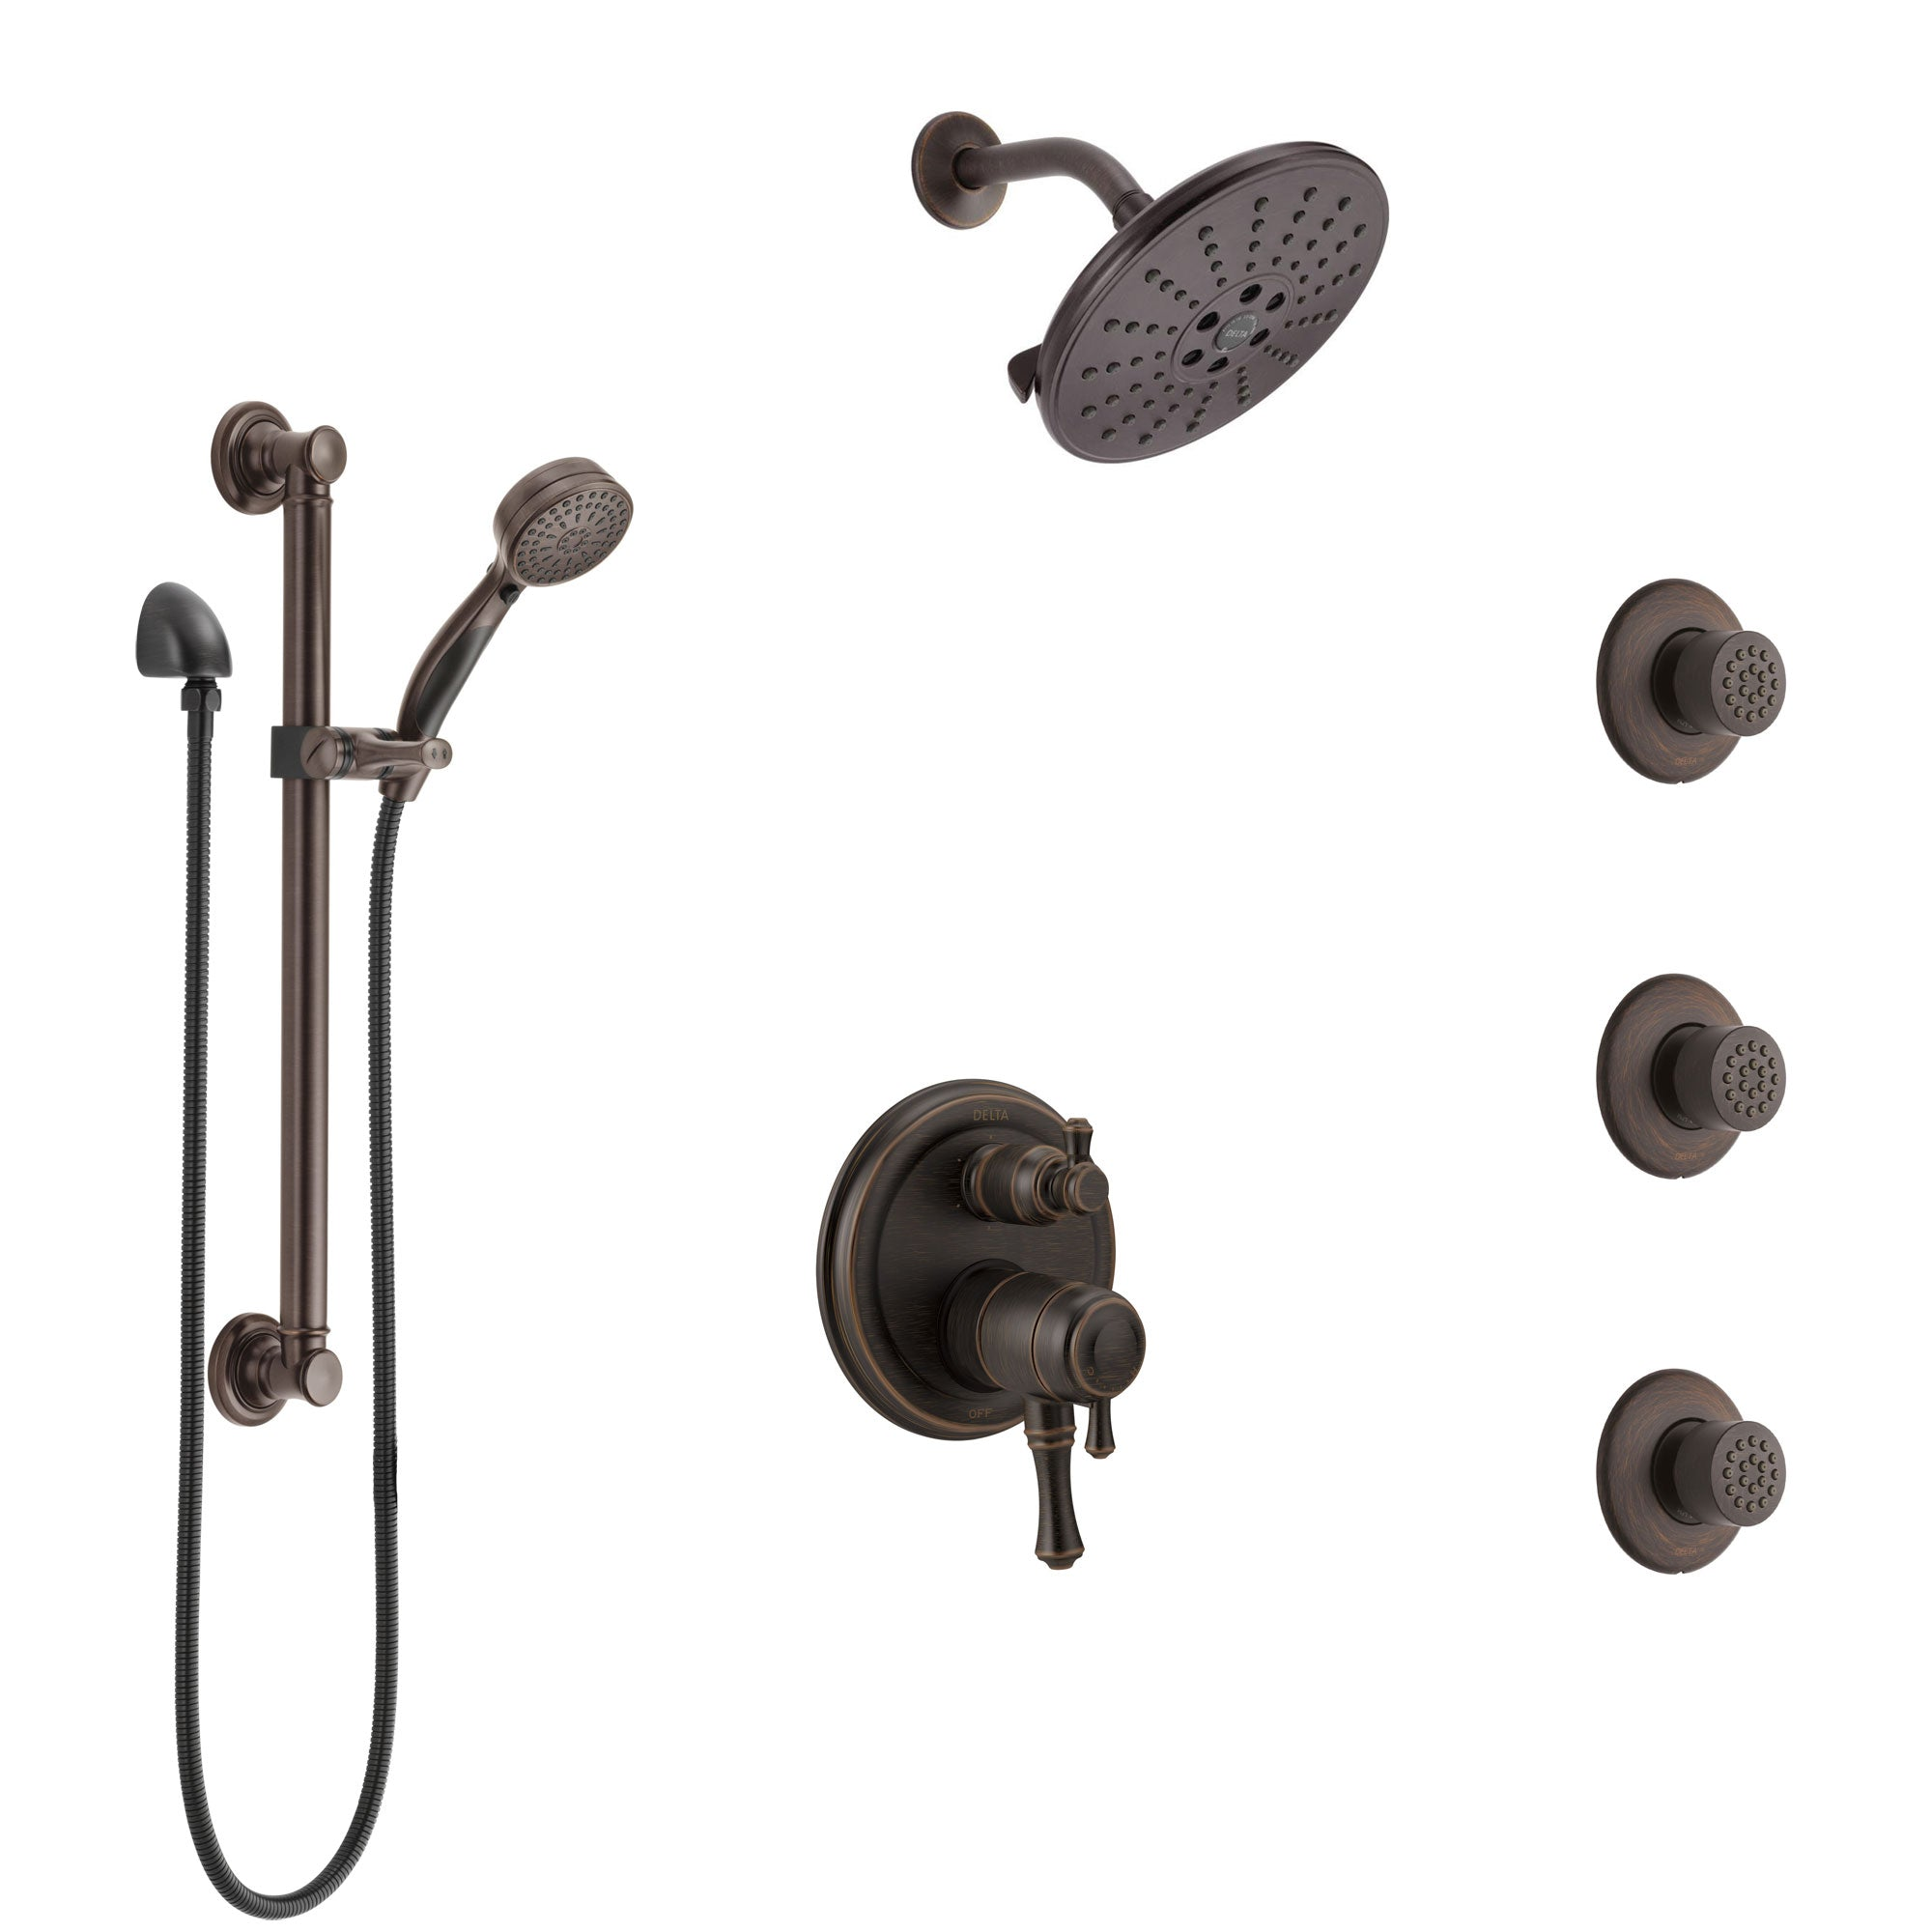 Delta Cassidy Venetian Bronze Shower System with Dual Control Handle, Integrated Diverter, Showerhead, 3 Body Sprays, Grab Bar Hand Spray SS27997RB7